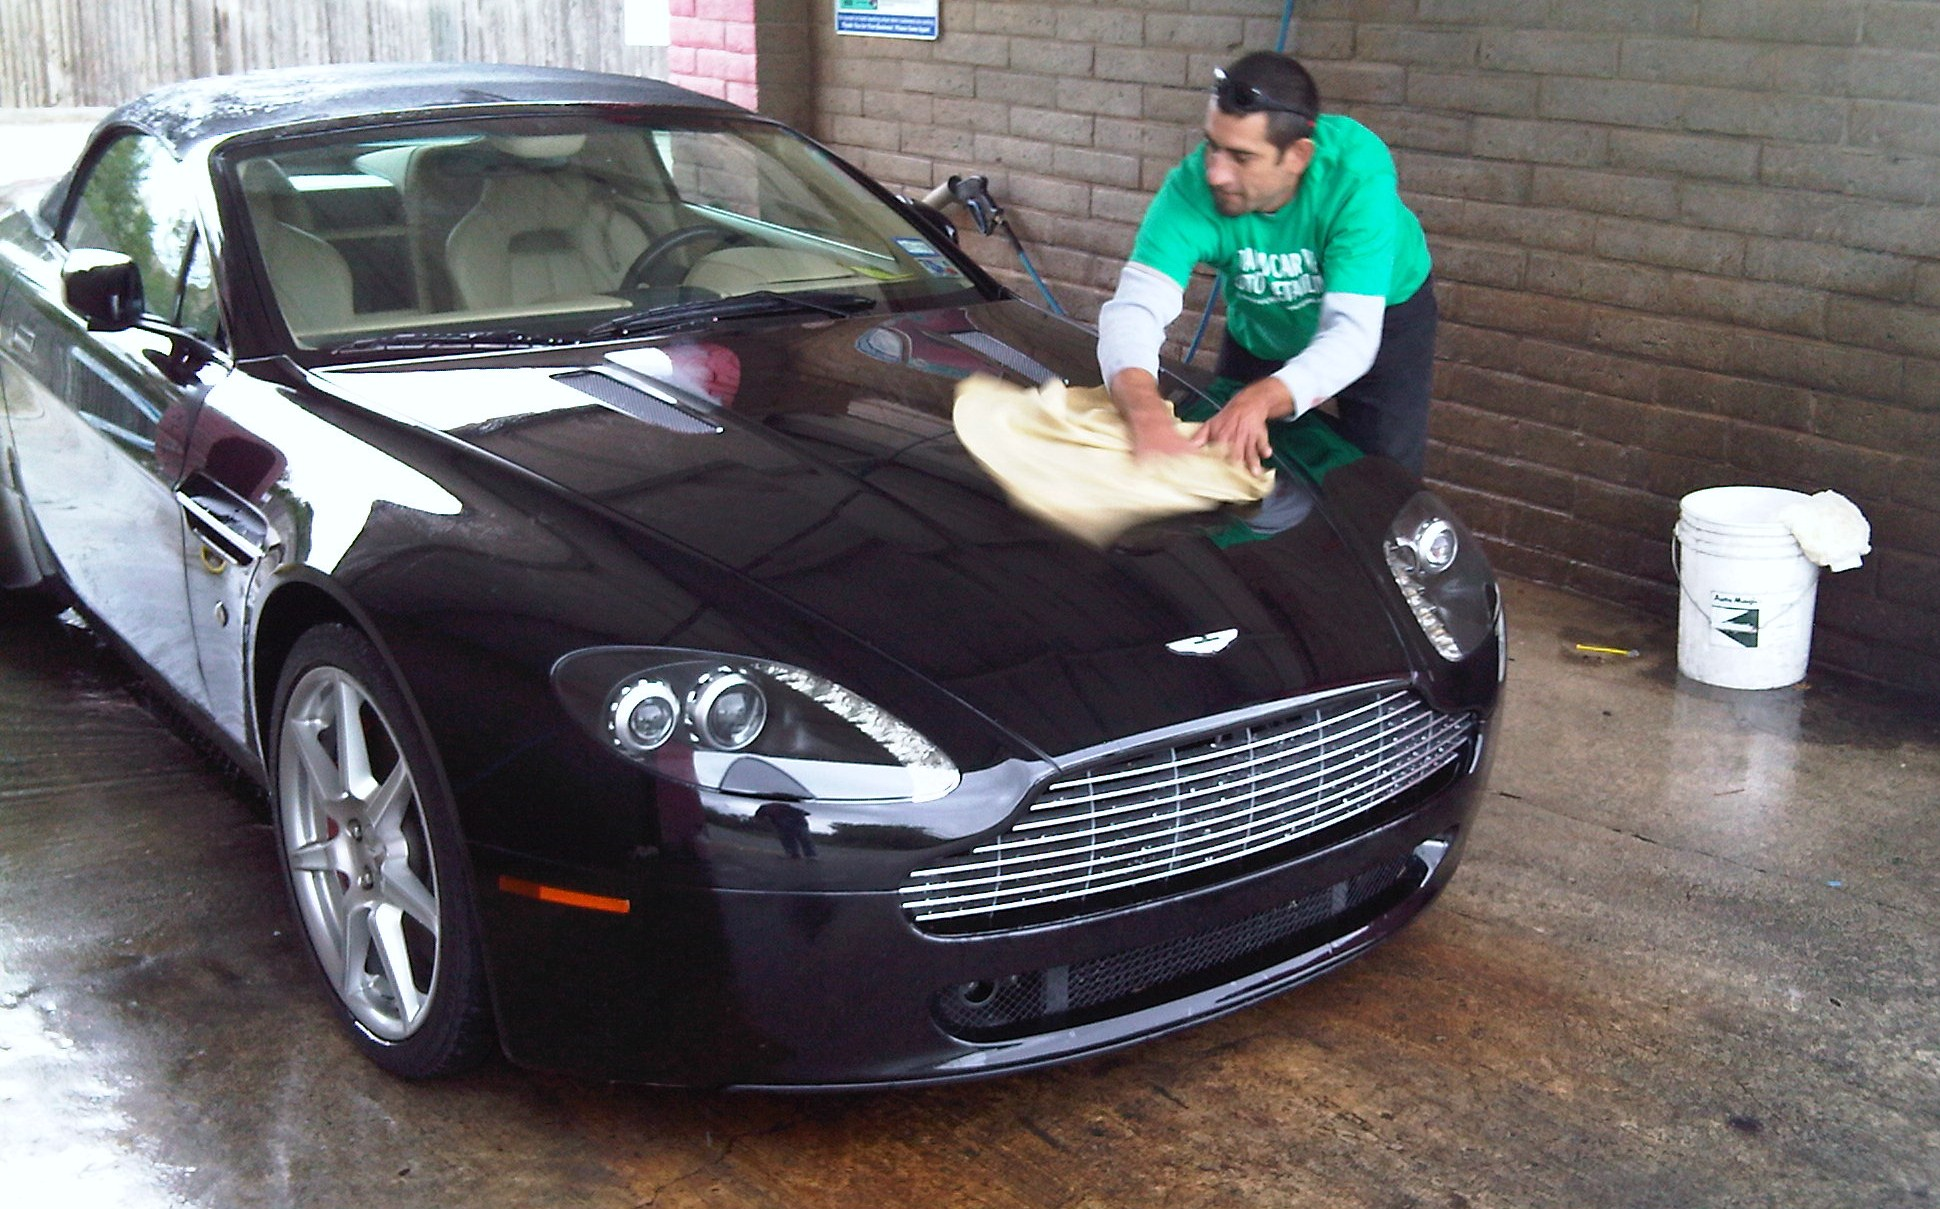 Full Service Hand Wash The Hand Car Wash And Auto Detailing